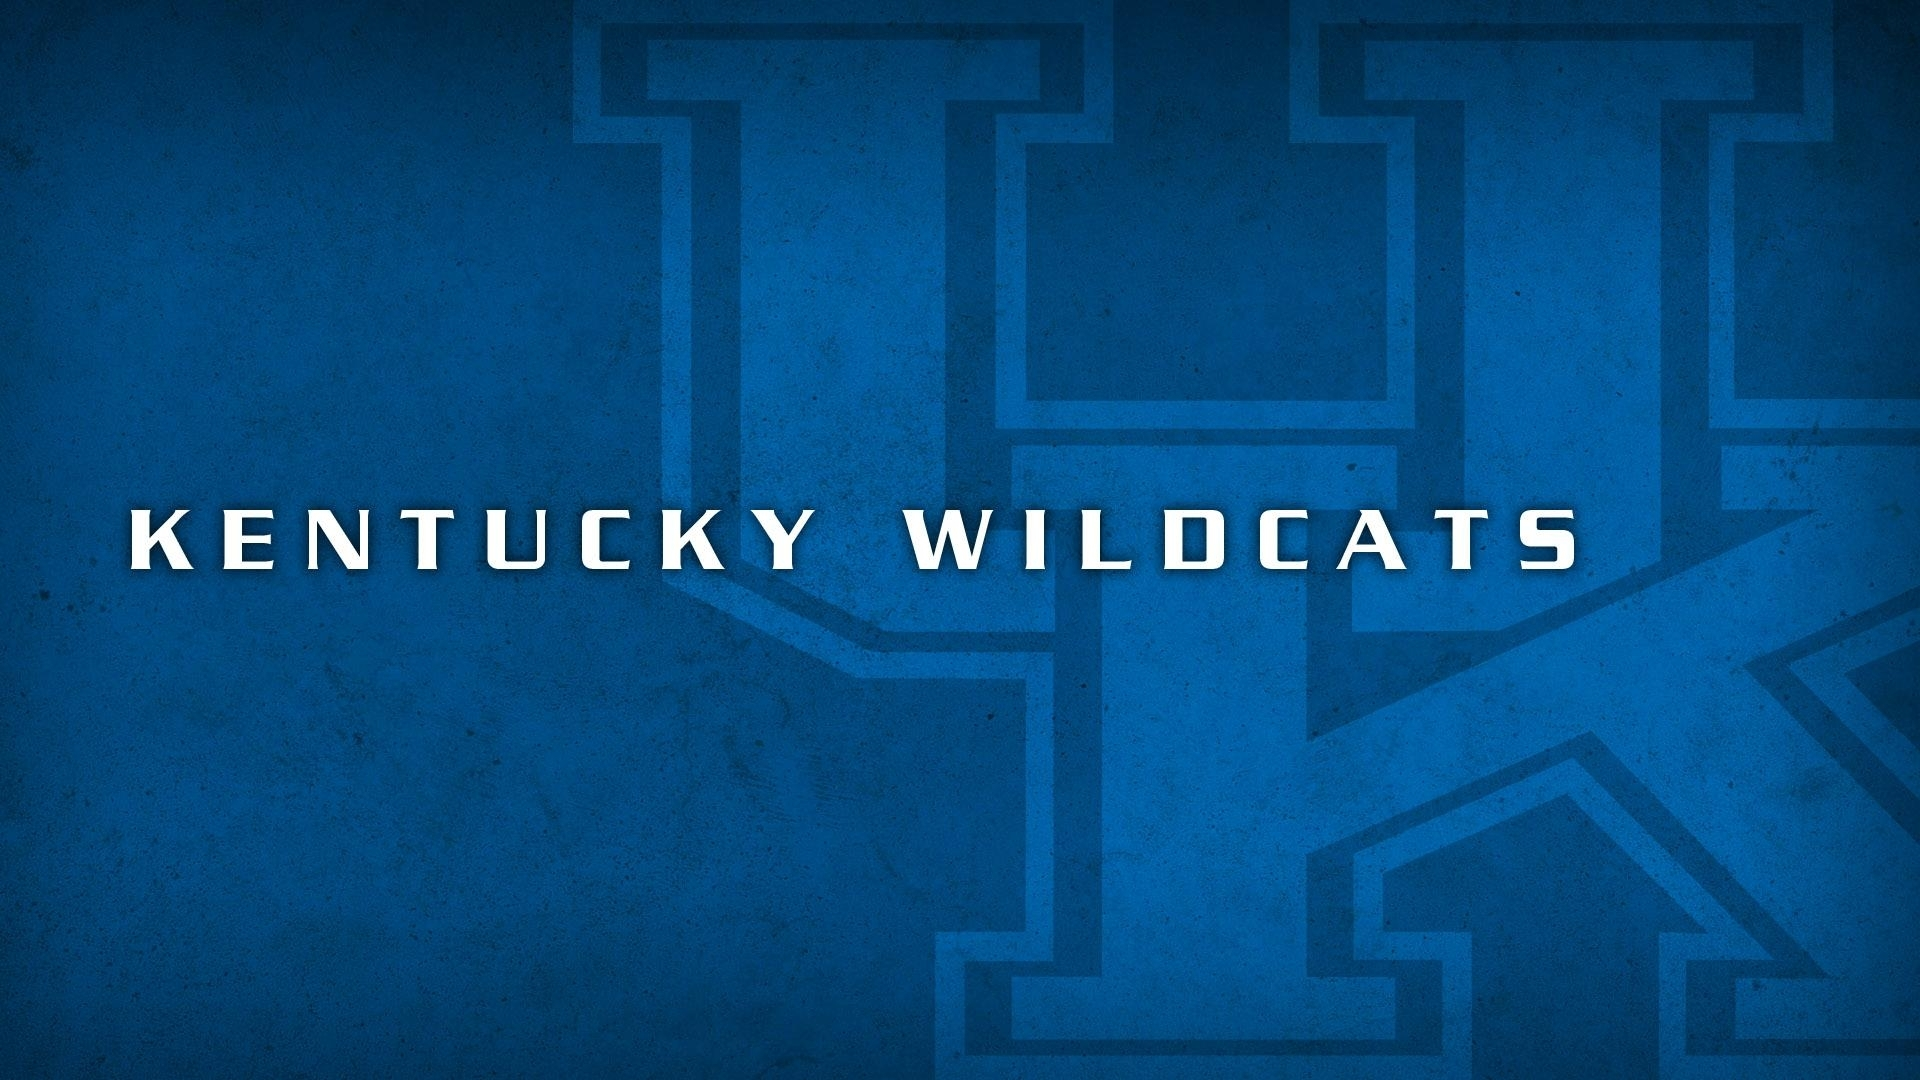 general uk wallpapers - university of kentucky